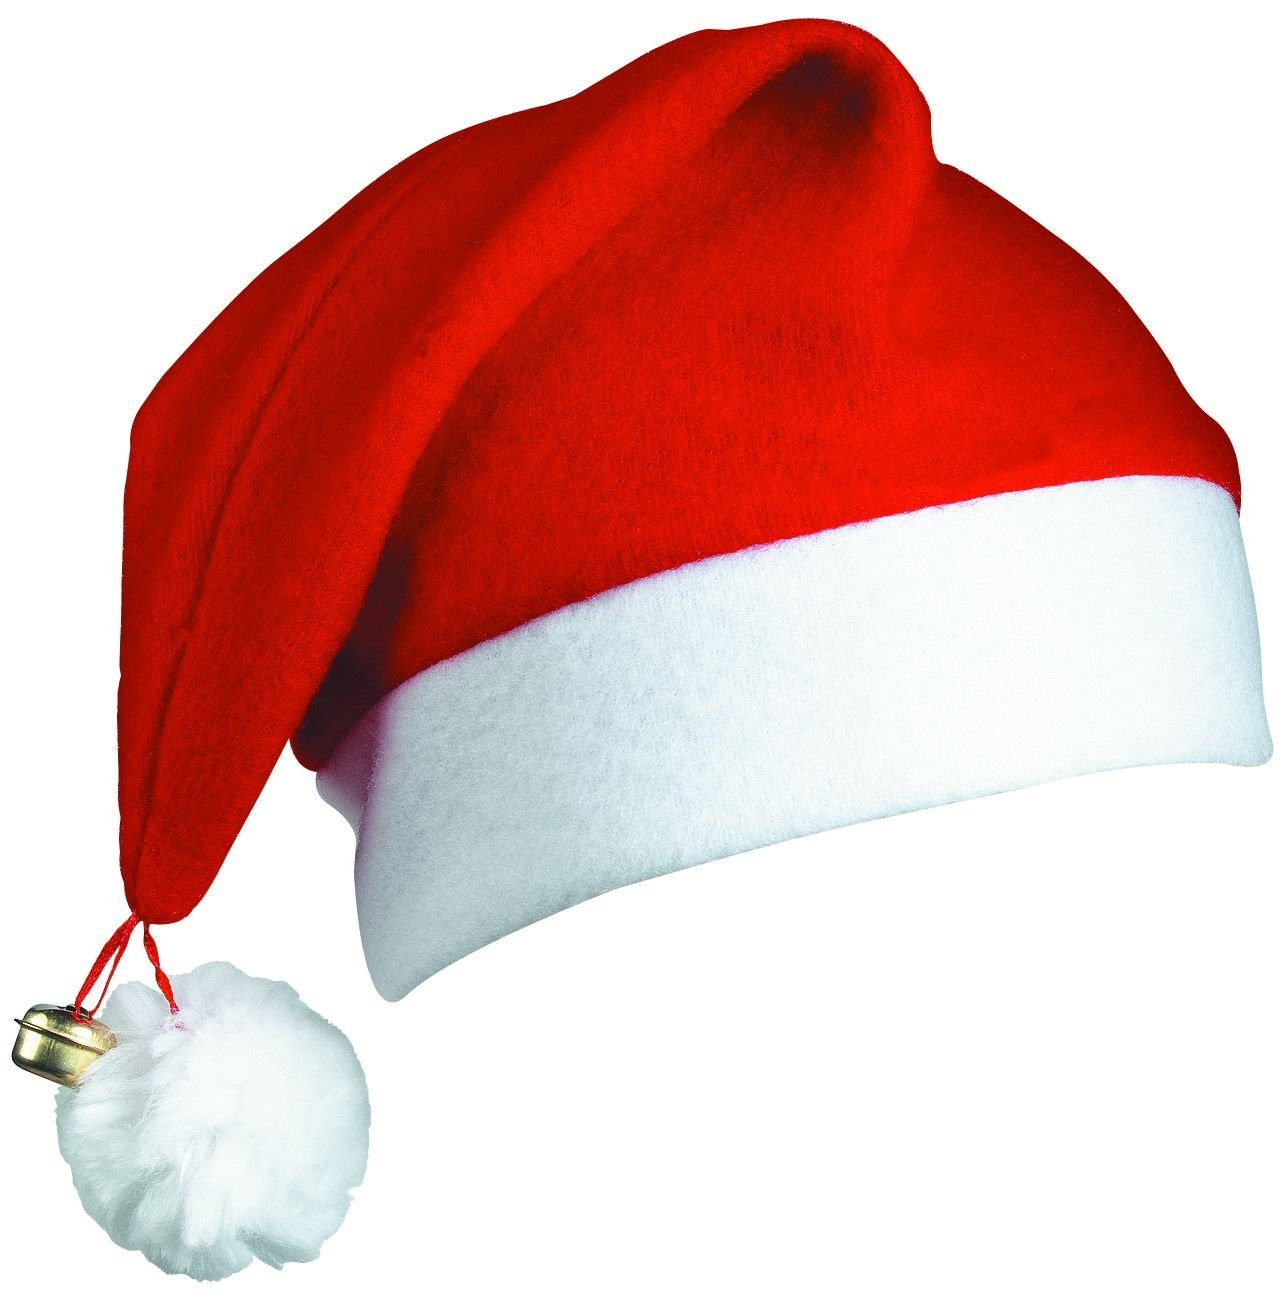 Picture Of A Santa Hat